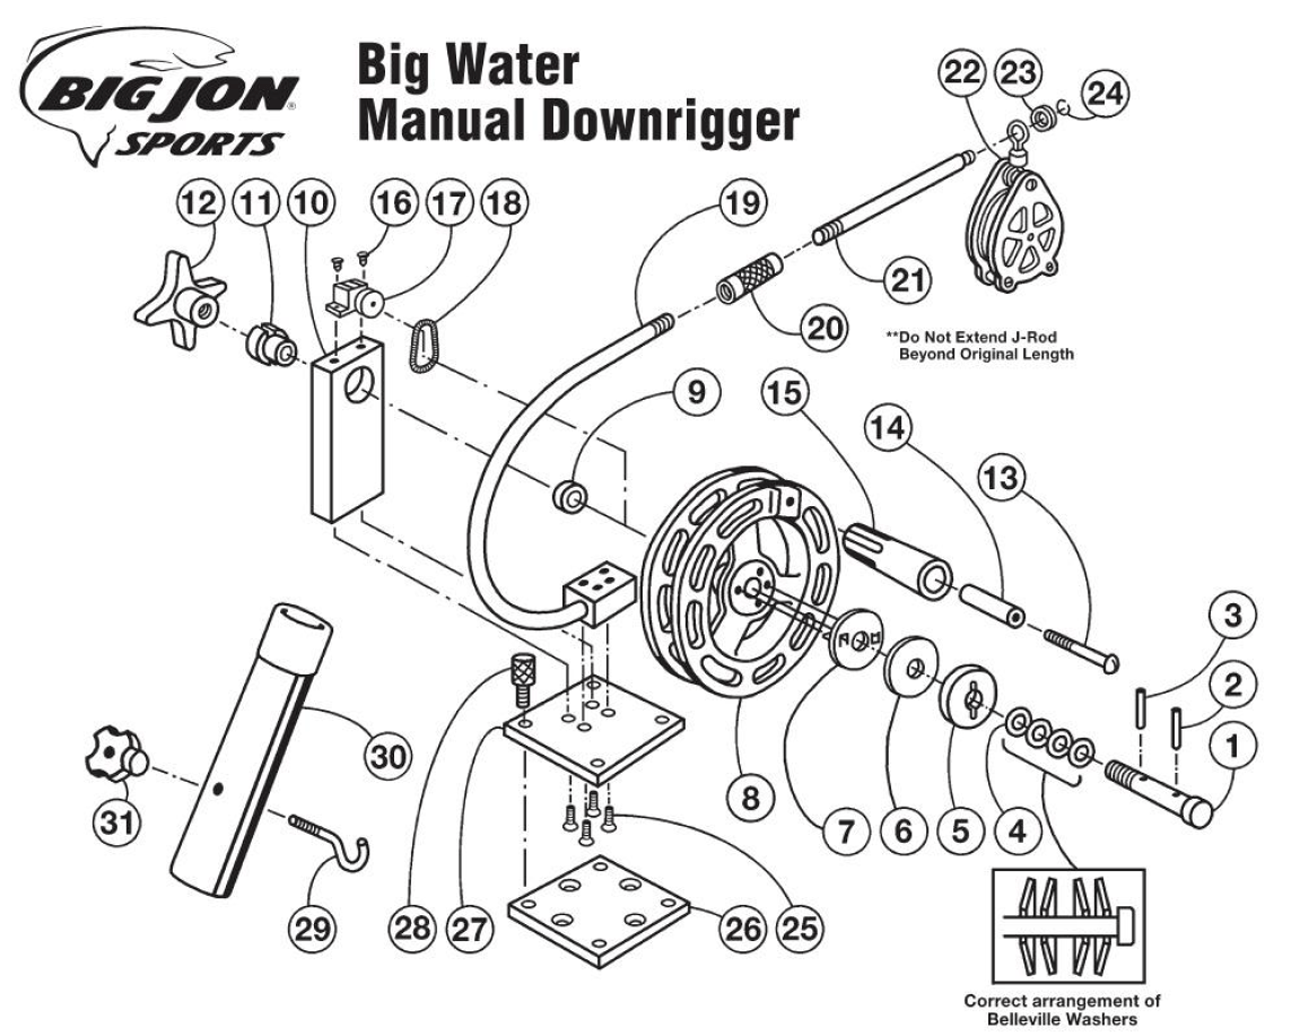 Big Jon Big Water Manual Downrigger Parts